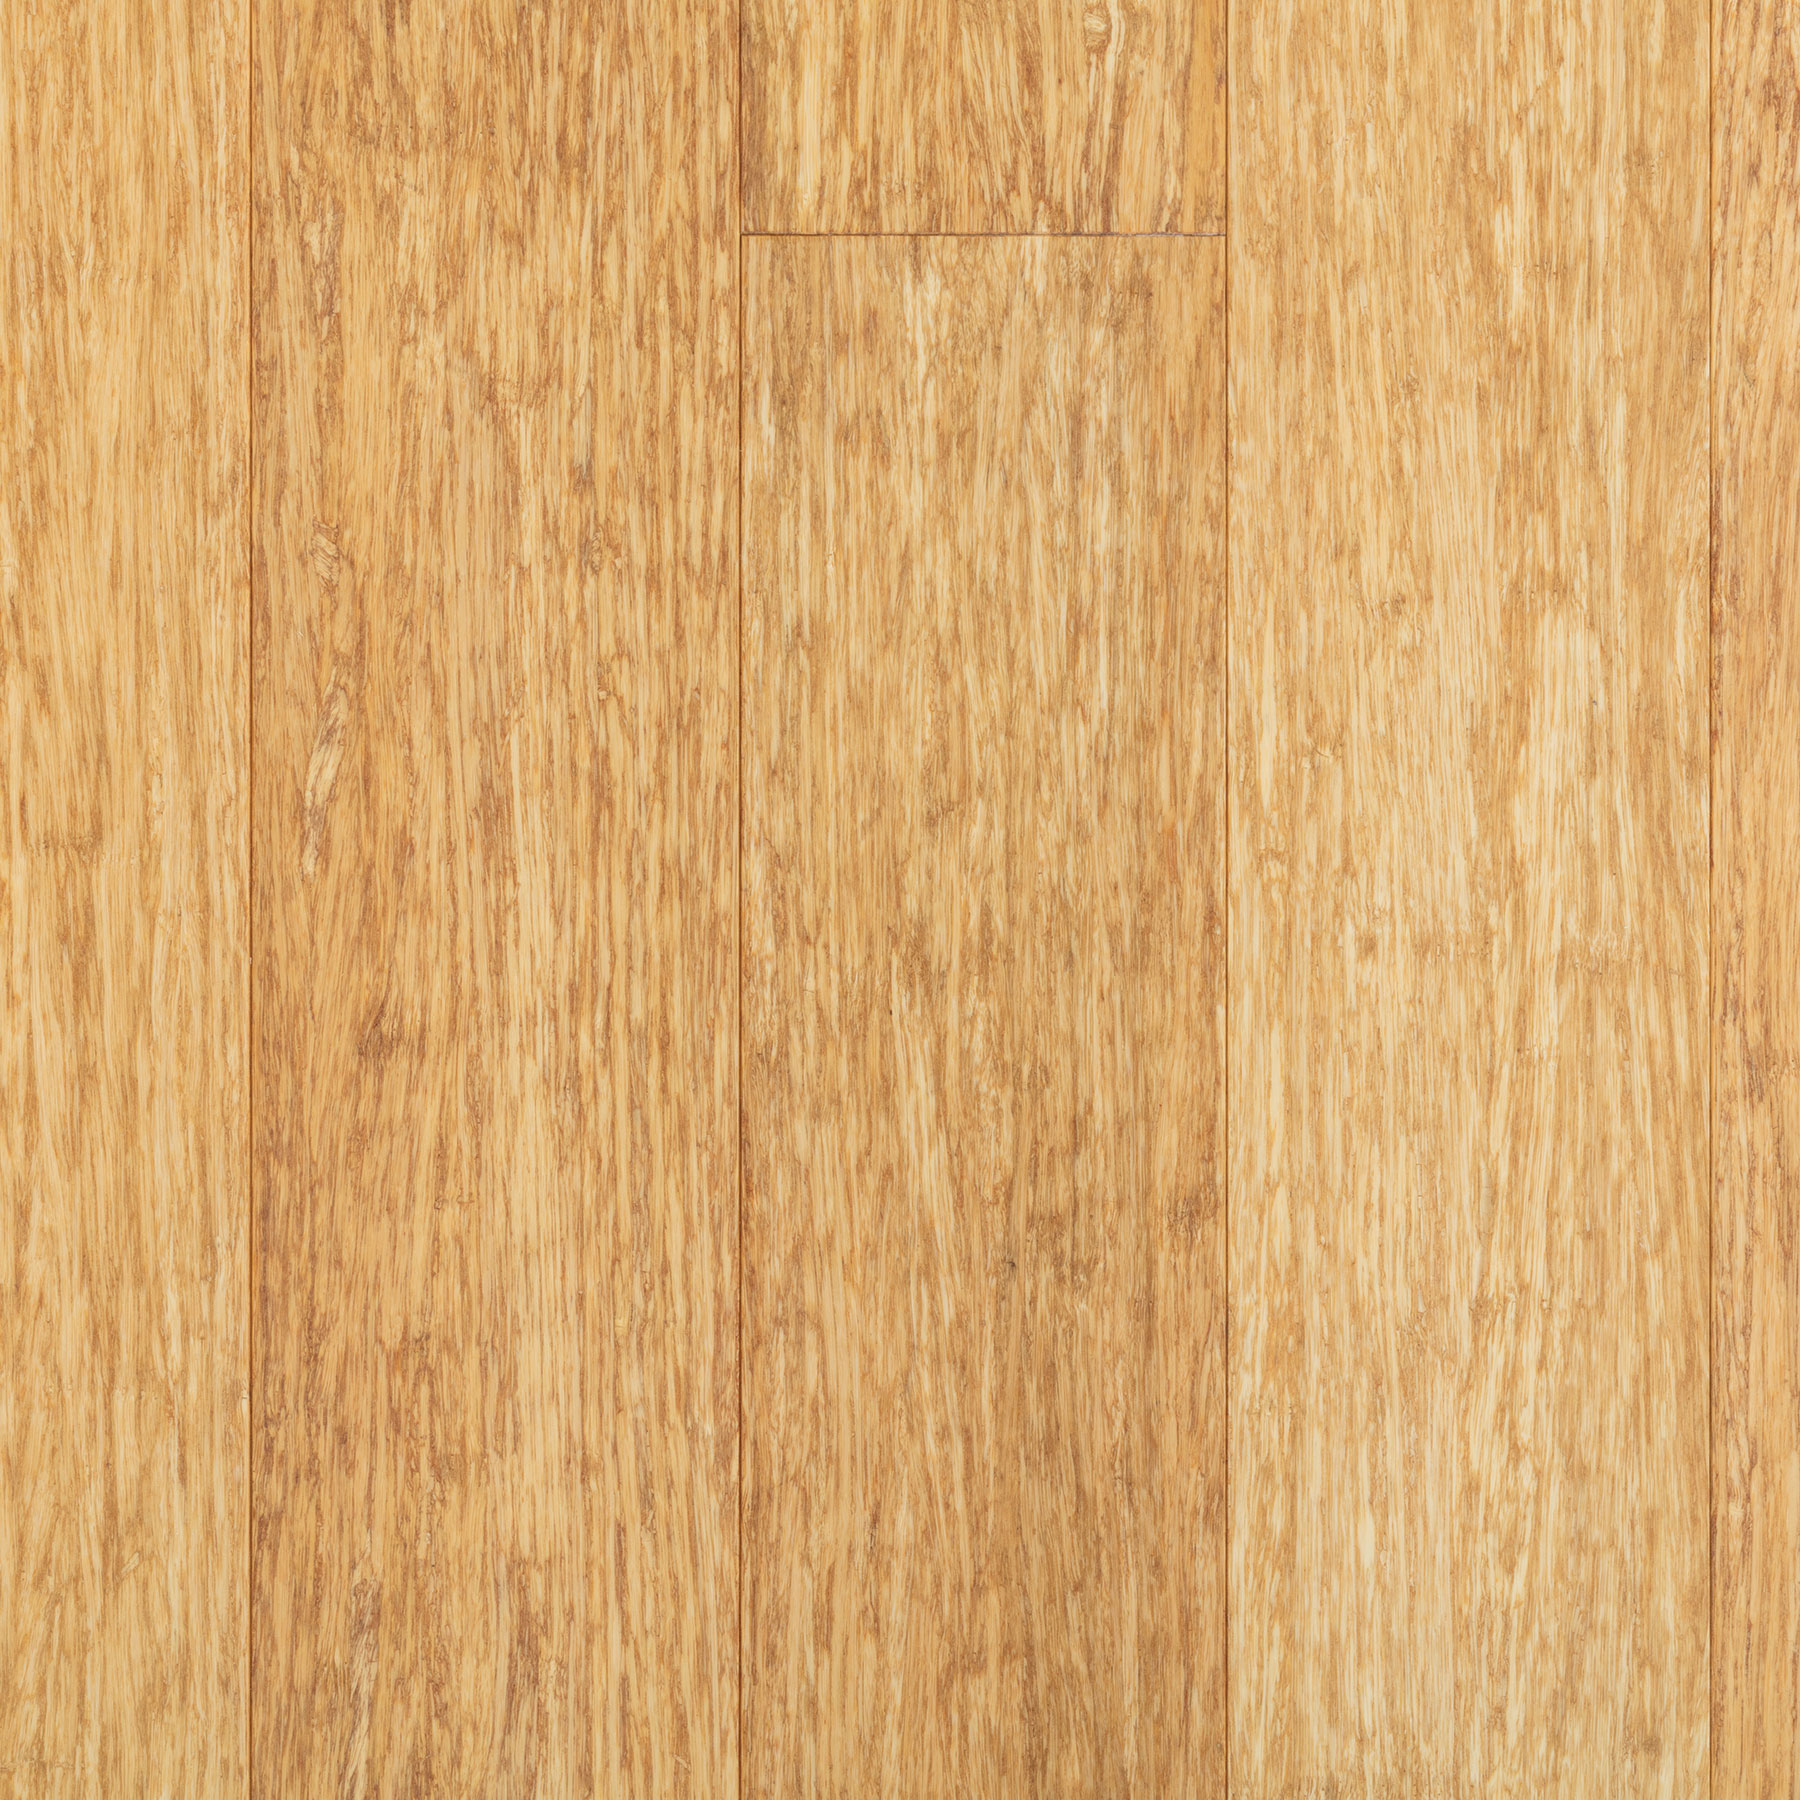 strand floor flooring product of woodpecker bamboo oxwich swatch coffee cropped